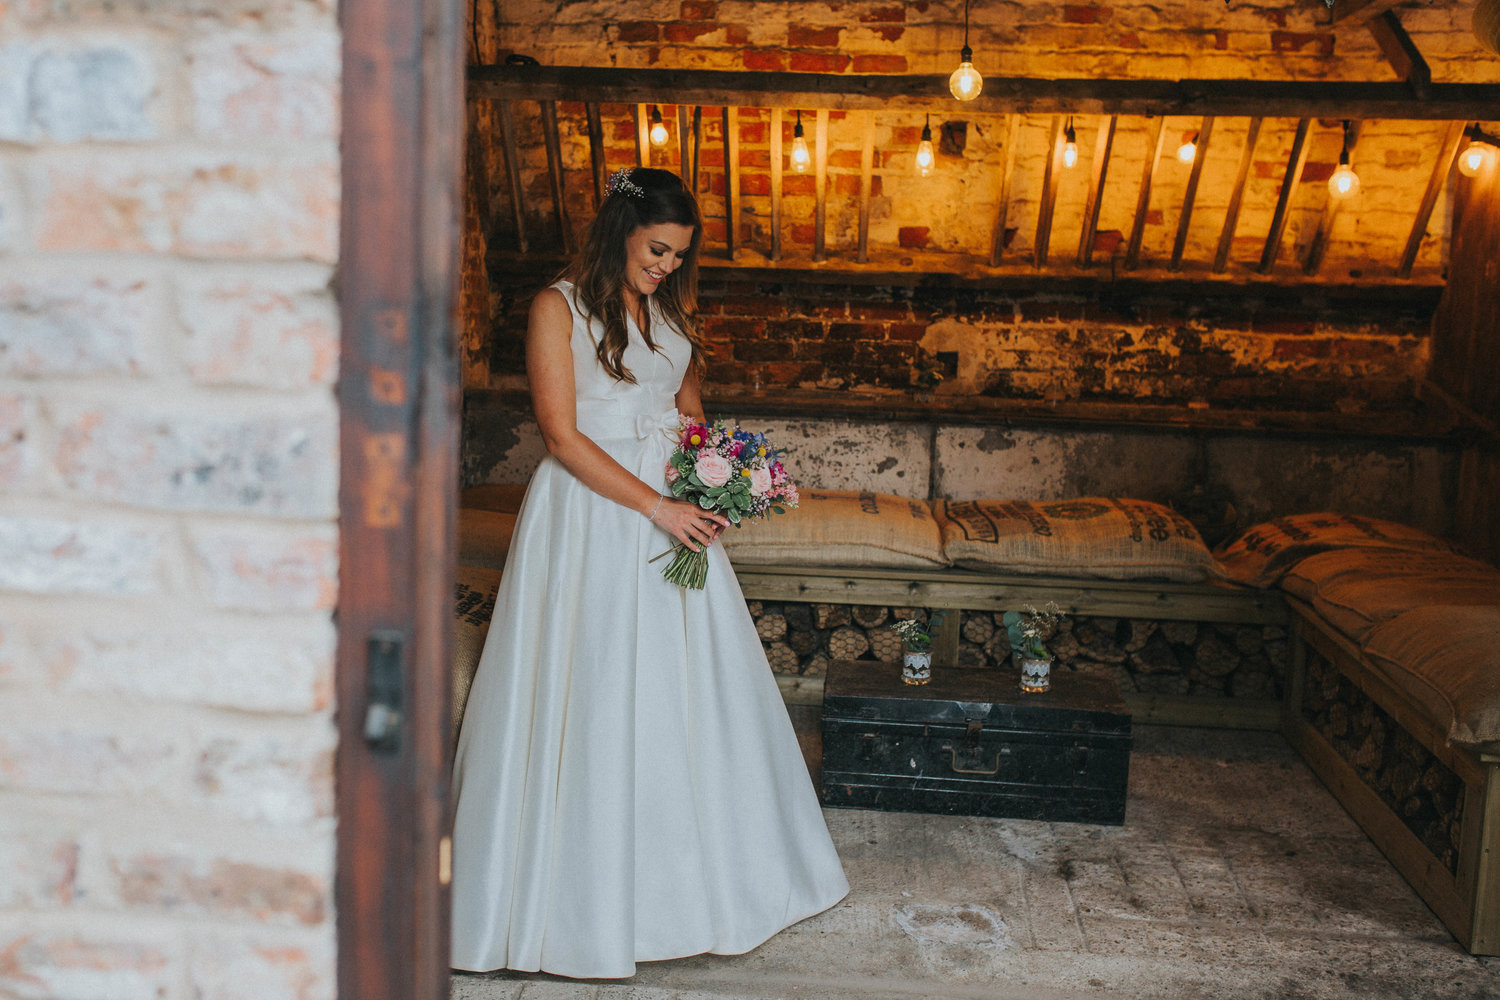 York+colourful+wedding+photography+at+the+normans-5.jpeg